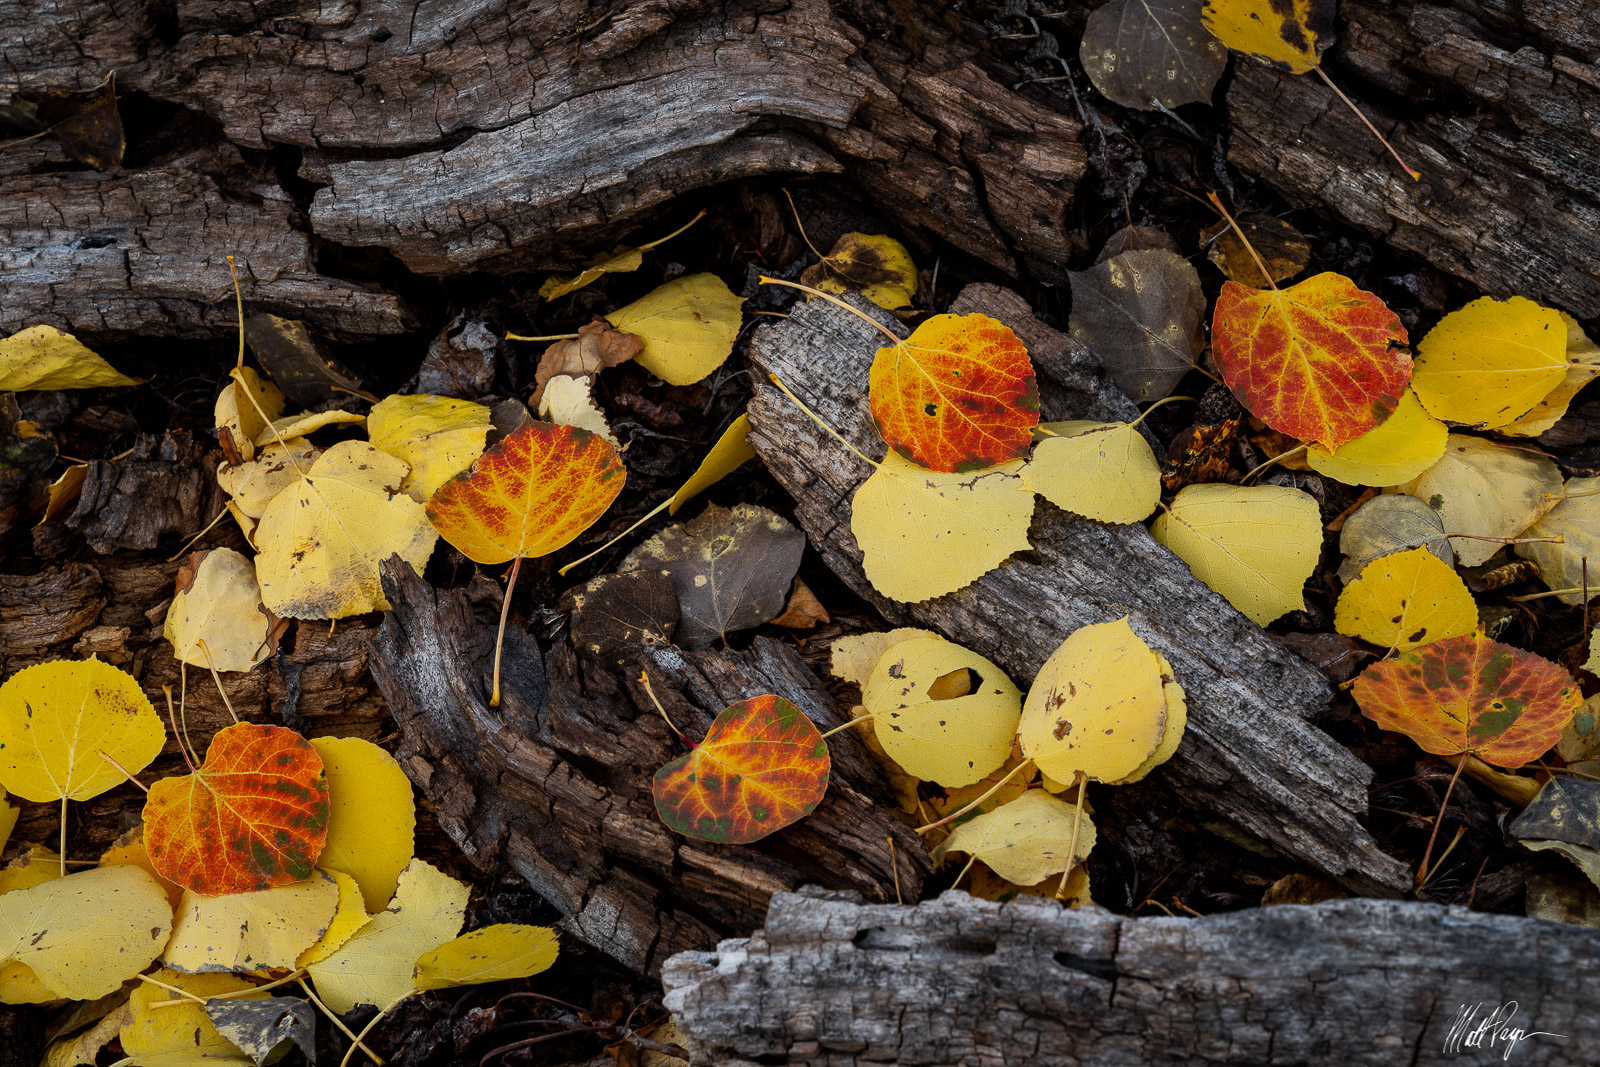 Fallen aspen leaves containing a variety of colors, including red, yellow, and gold, reminded me of a fireplace filled with burning...